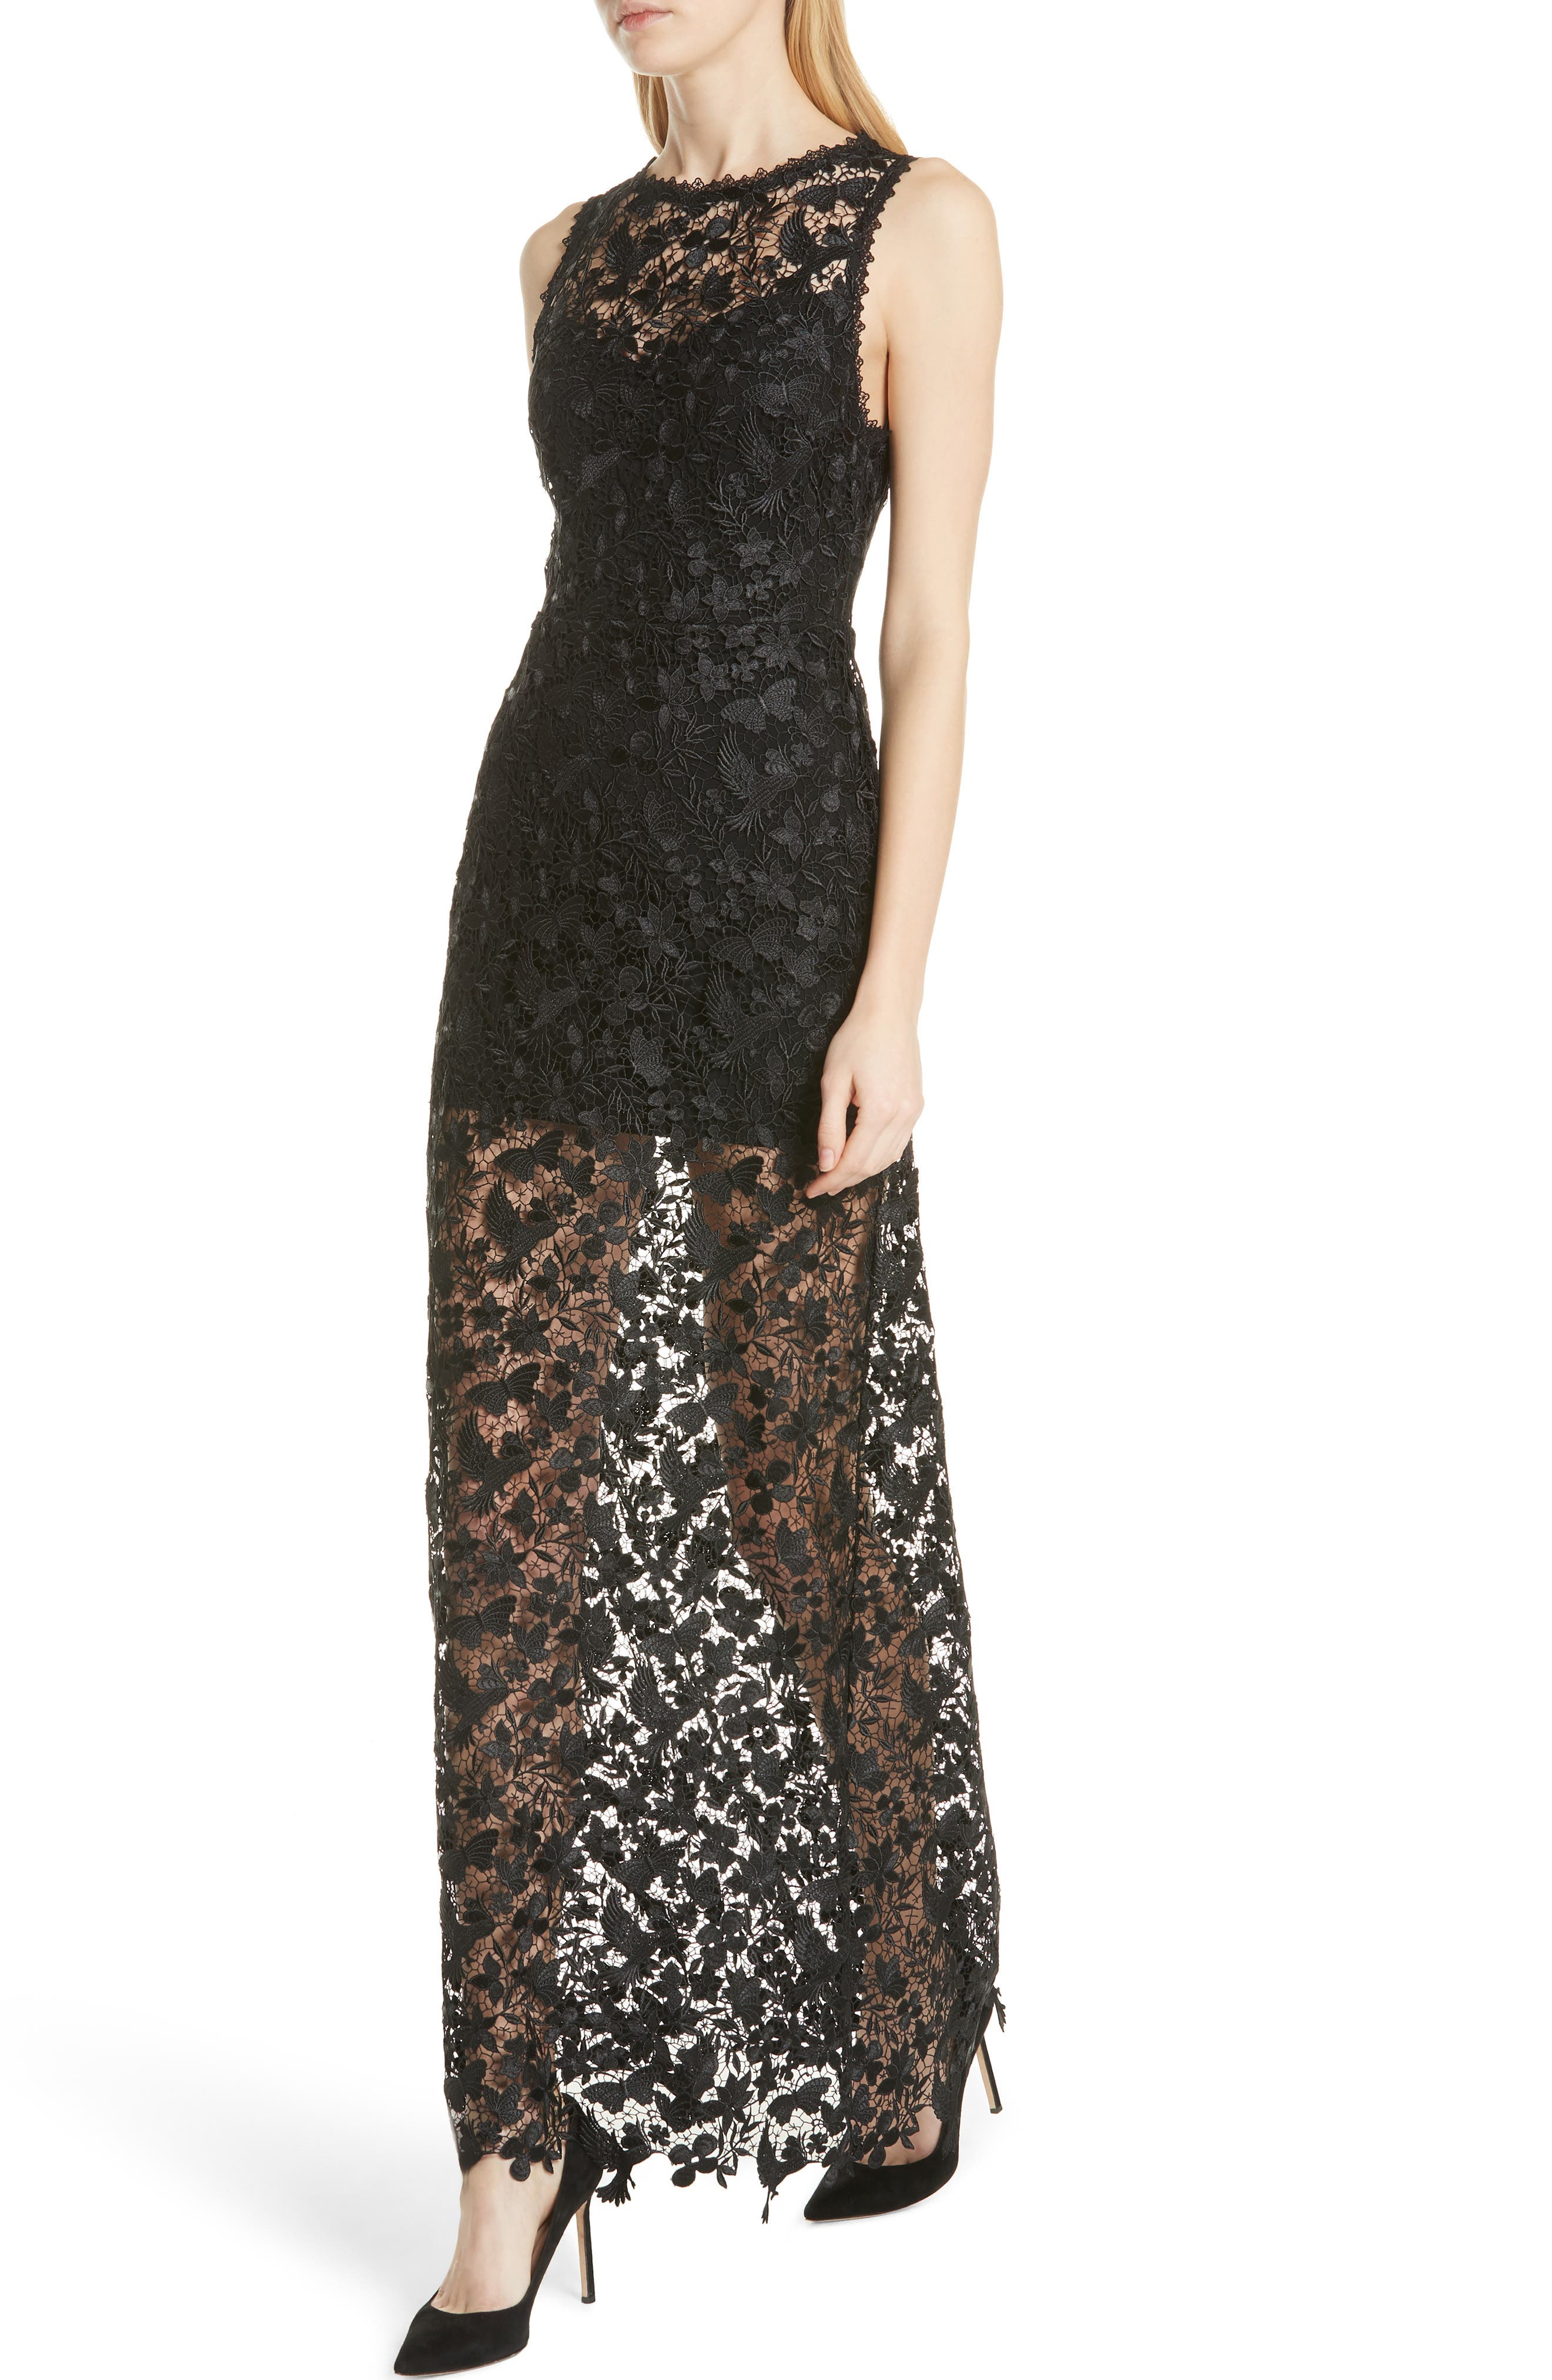 ALICE + OLIVIA,                             Danielle Silk Lace Overlay Sheer Maxi Dress,                             Alternate thumbnail 4, color,                             001